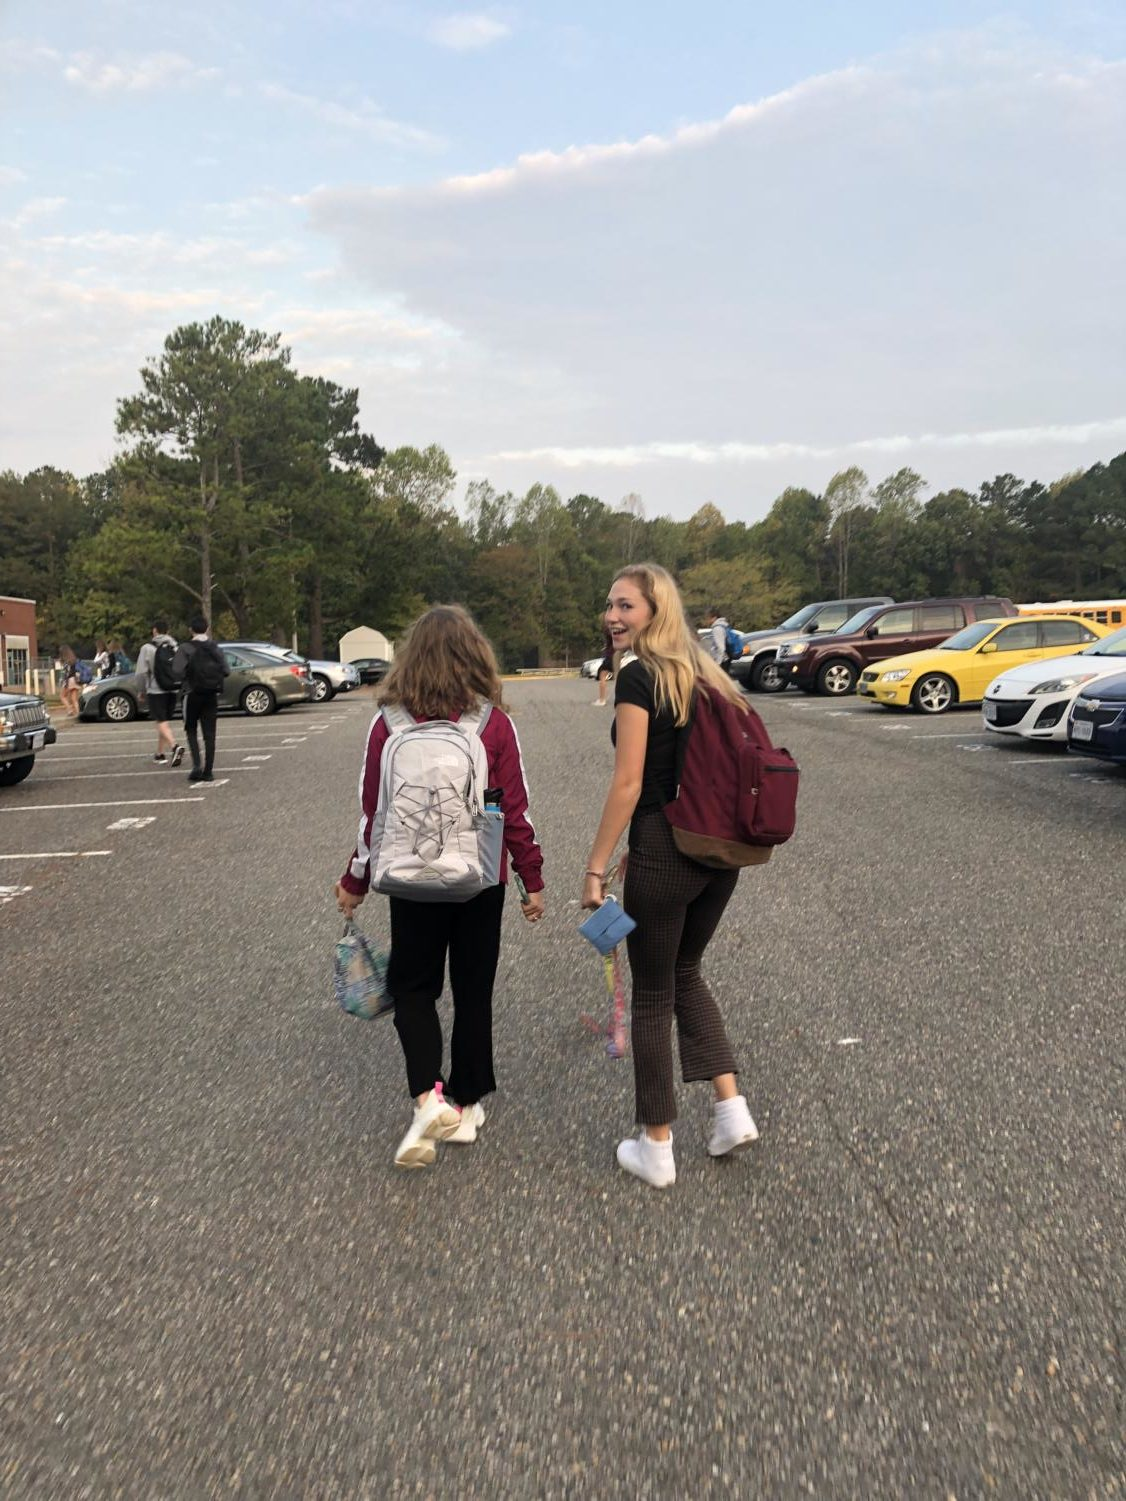 We step outside the car and acknowledge the crisp Autumn air- its only this fresh in the early hours of the morning. The caffeine has yet to show itself; Emma and Genevieve move sluggishly across the parking lot, hoping that the time hits 2:20 before they reach the school doors.